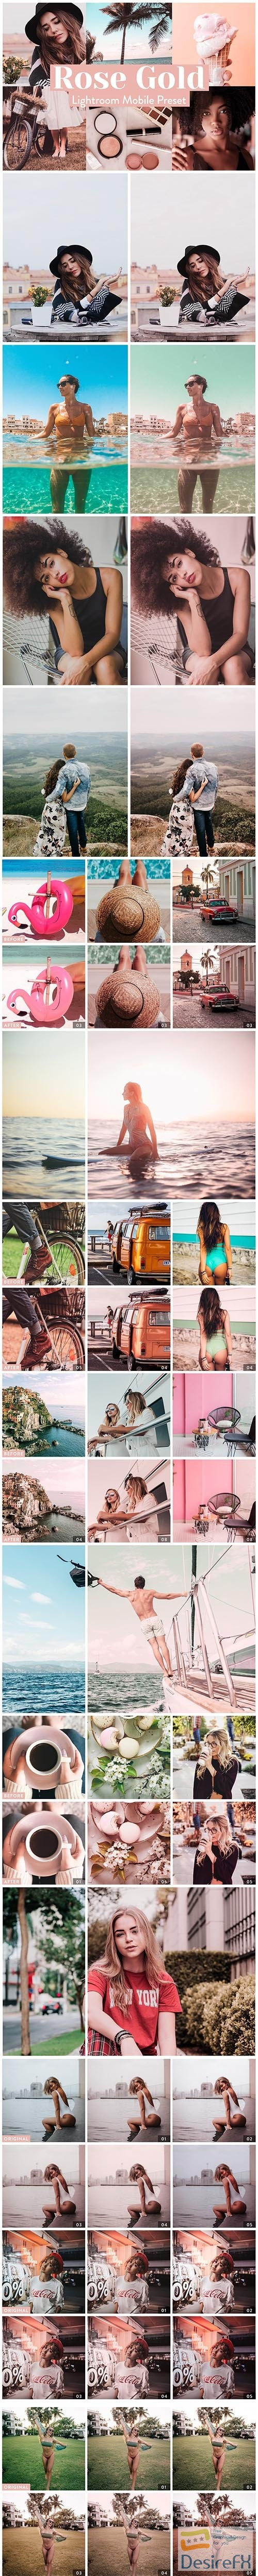 photoshop - Rose Gold Lightroom Presets Mobile 3972243